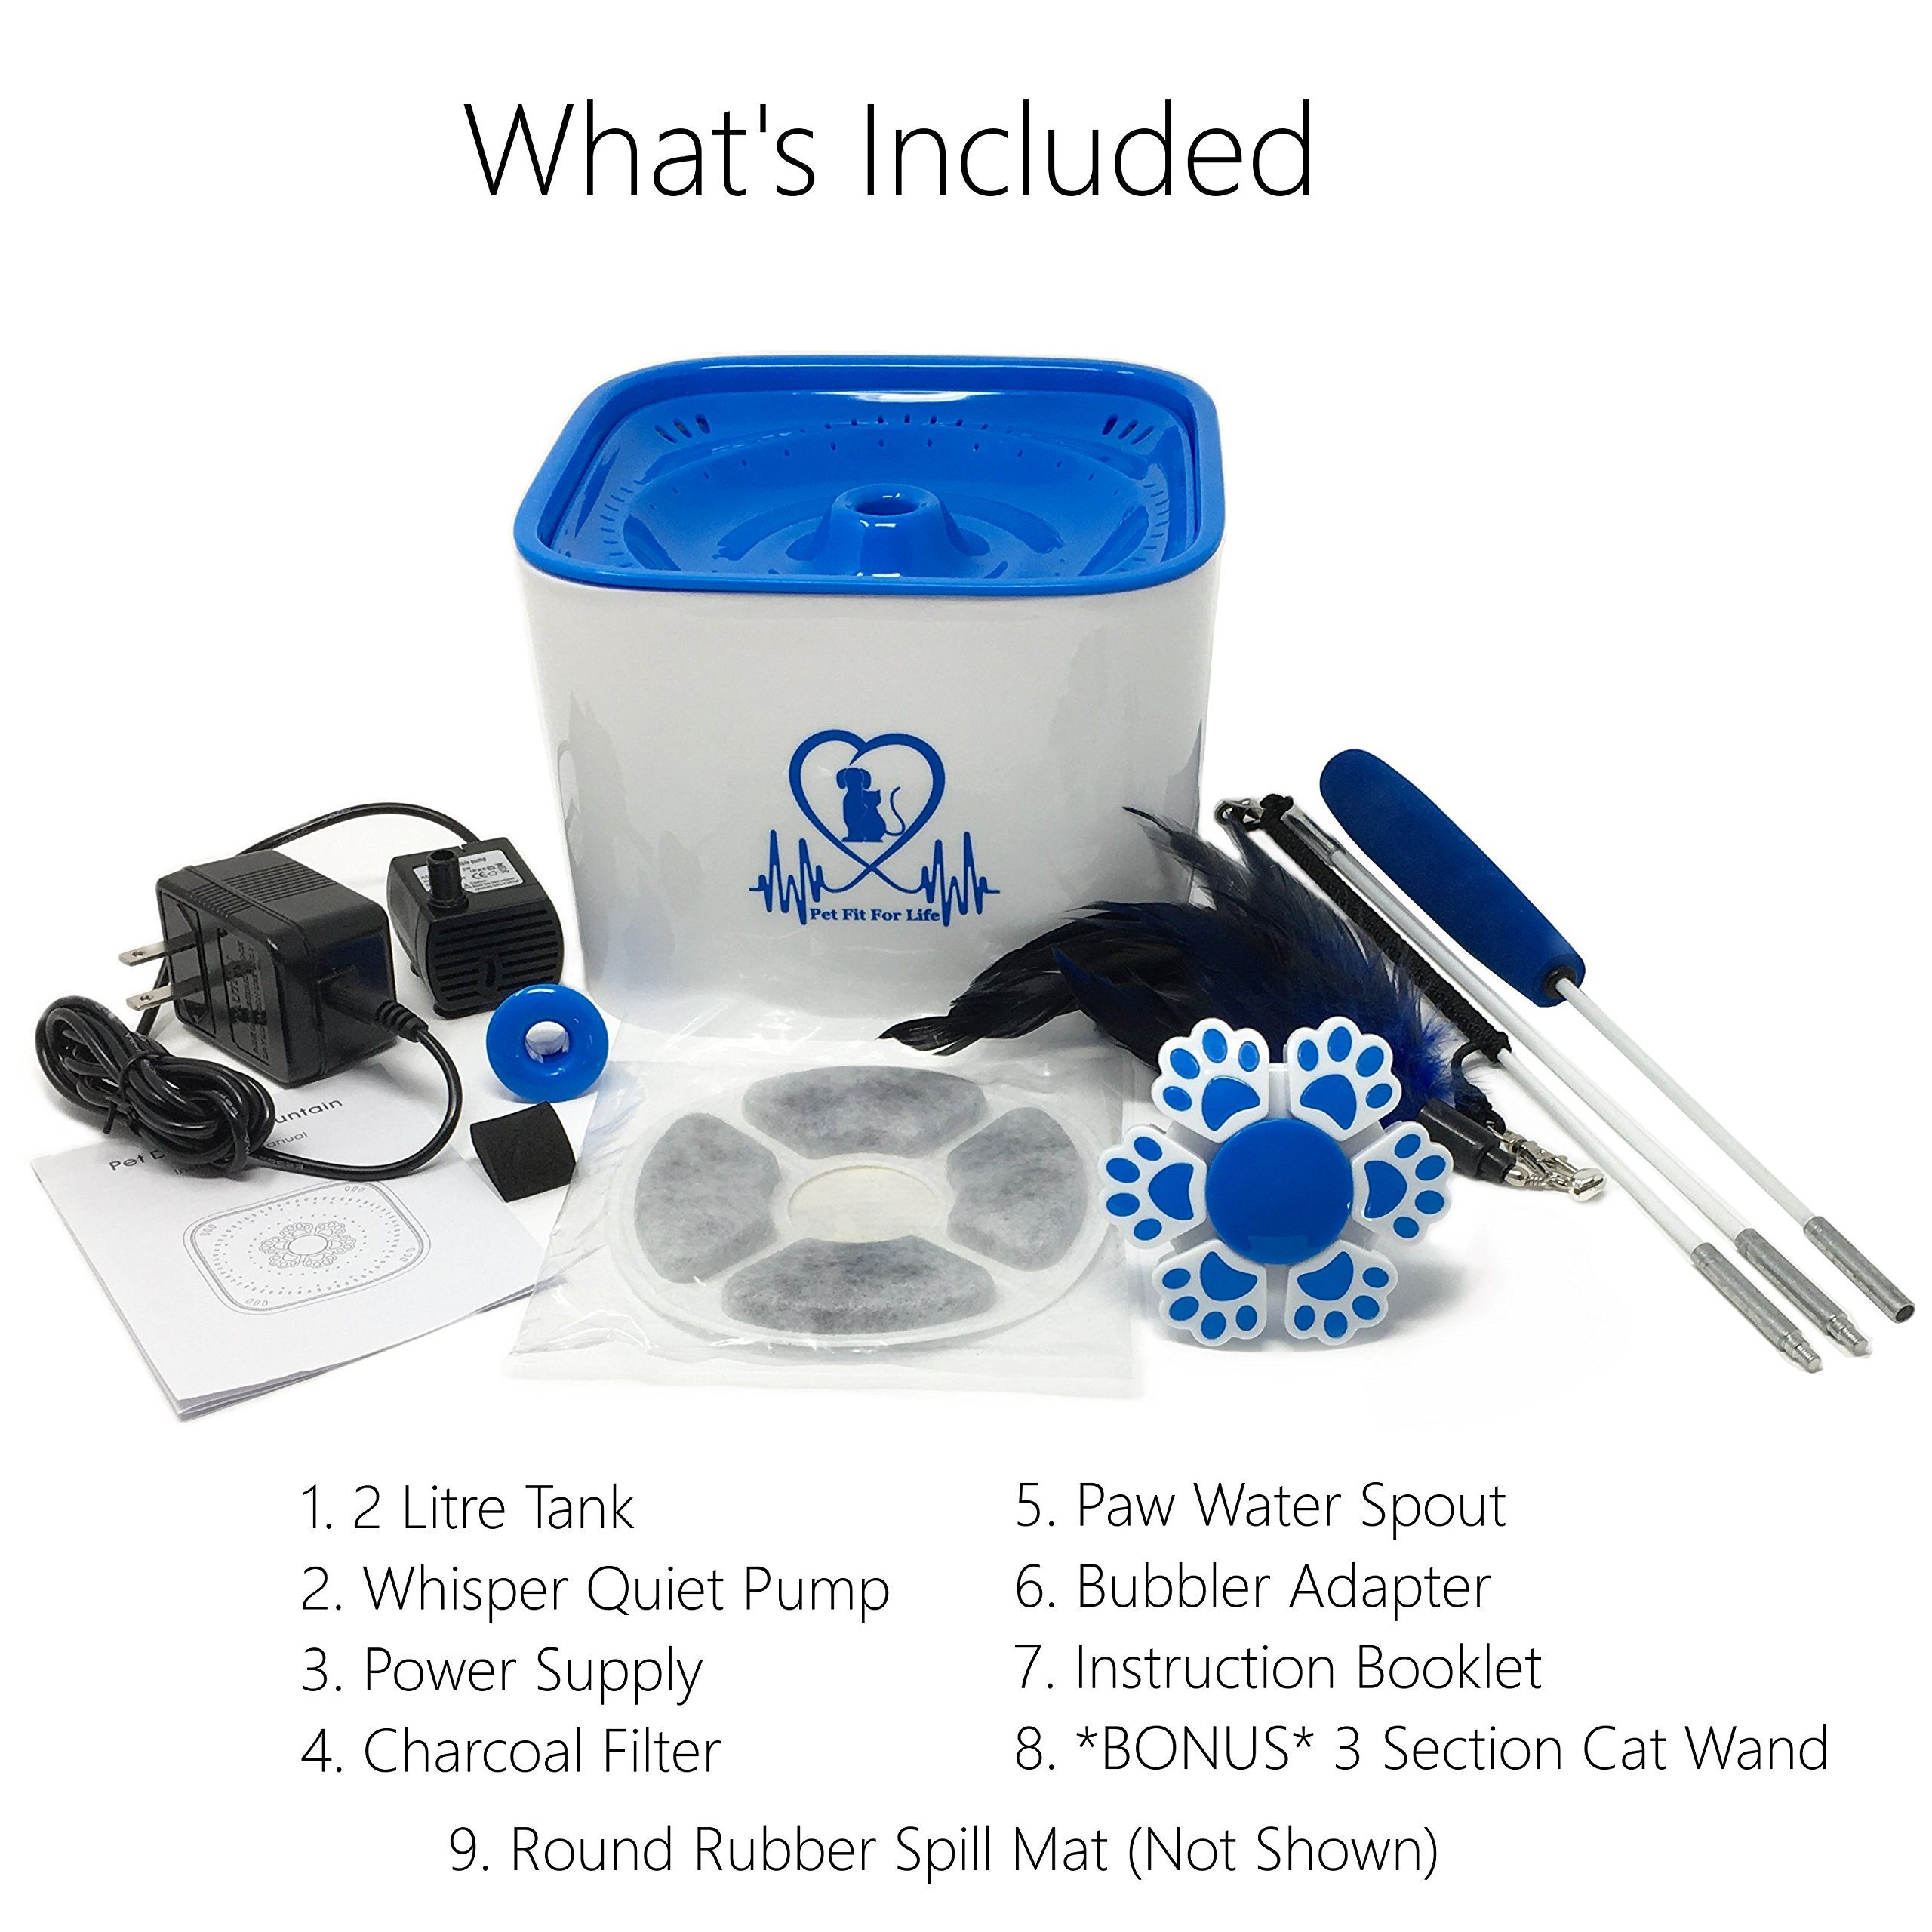 Pet Fit For Life Water Fountain Dispenser Plus Bonus Cat Wand And Mat 2 Liter Super Quiet Automatic Water Bowl With Ch Small Pets Diy Cat Toys Charcoal Filter